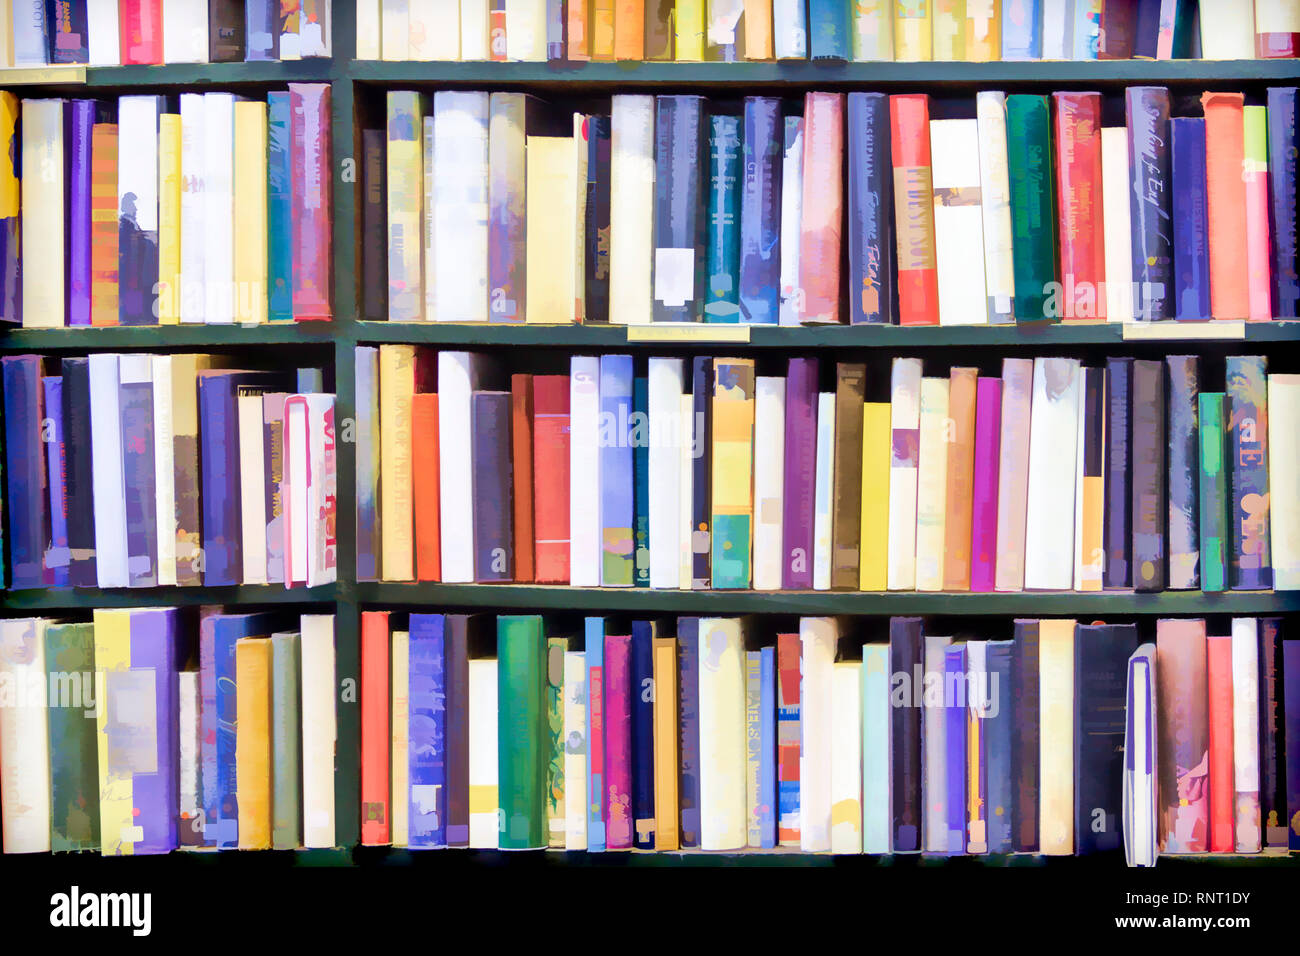 Abstract painterly image of multicoloured books stacked tightly on a library bookshelf, the titles obscured Stock Photo